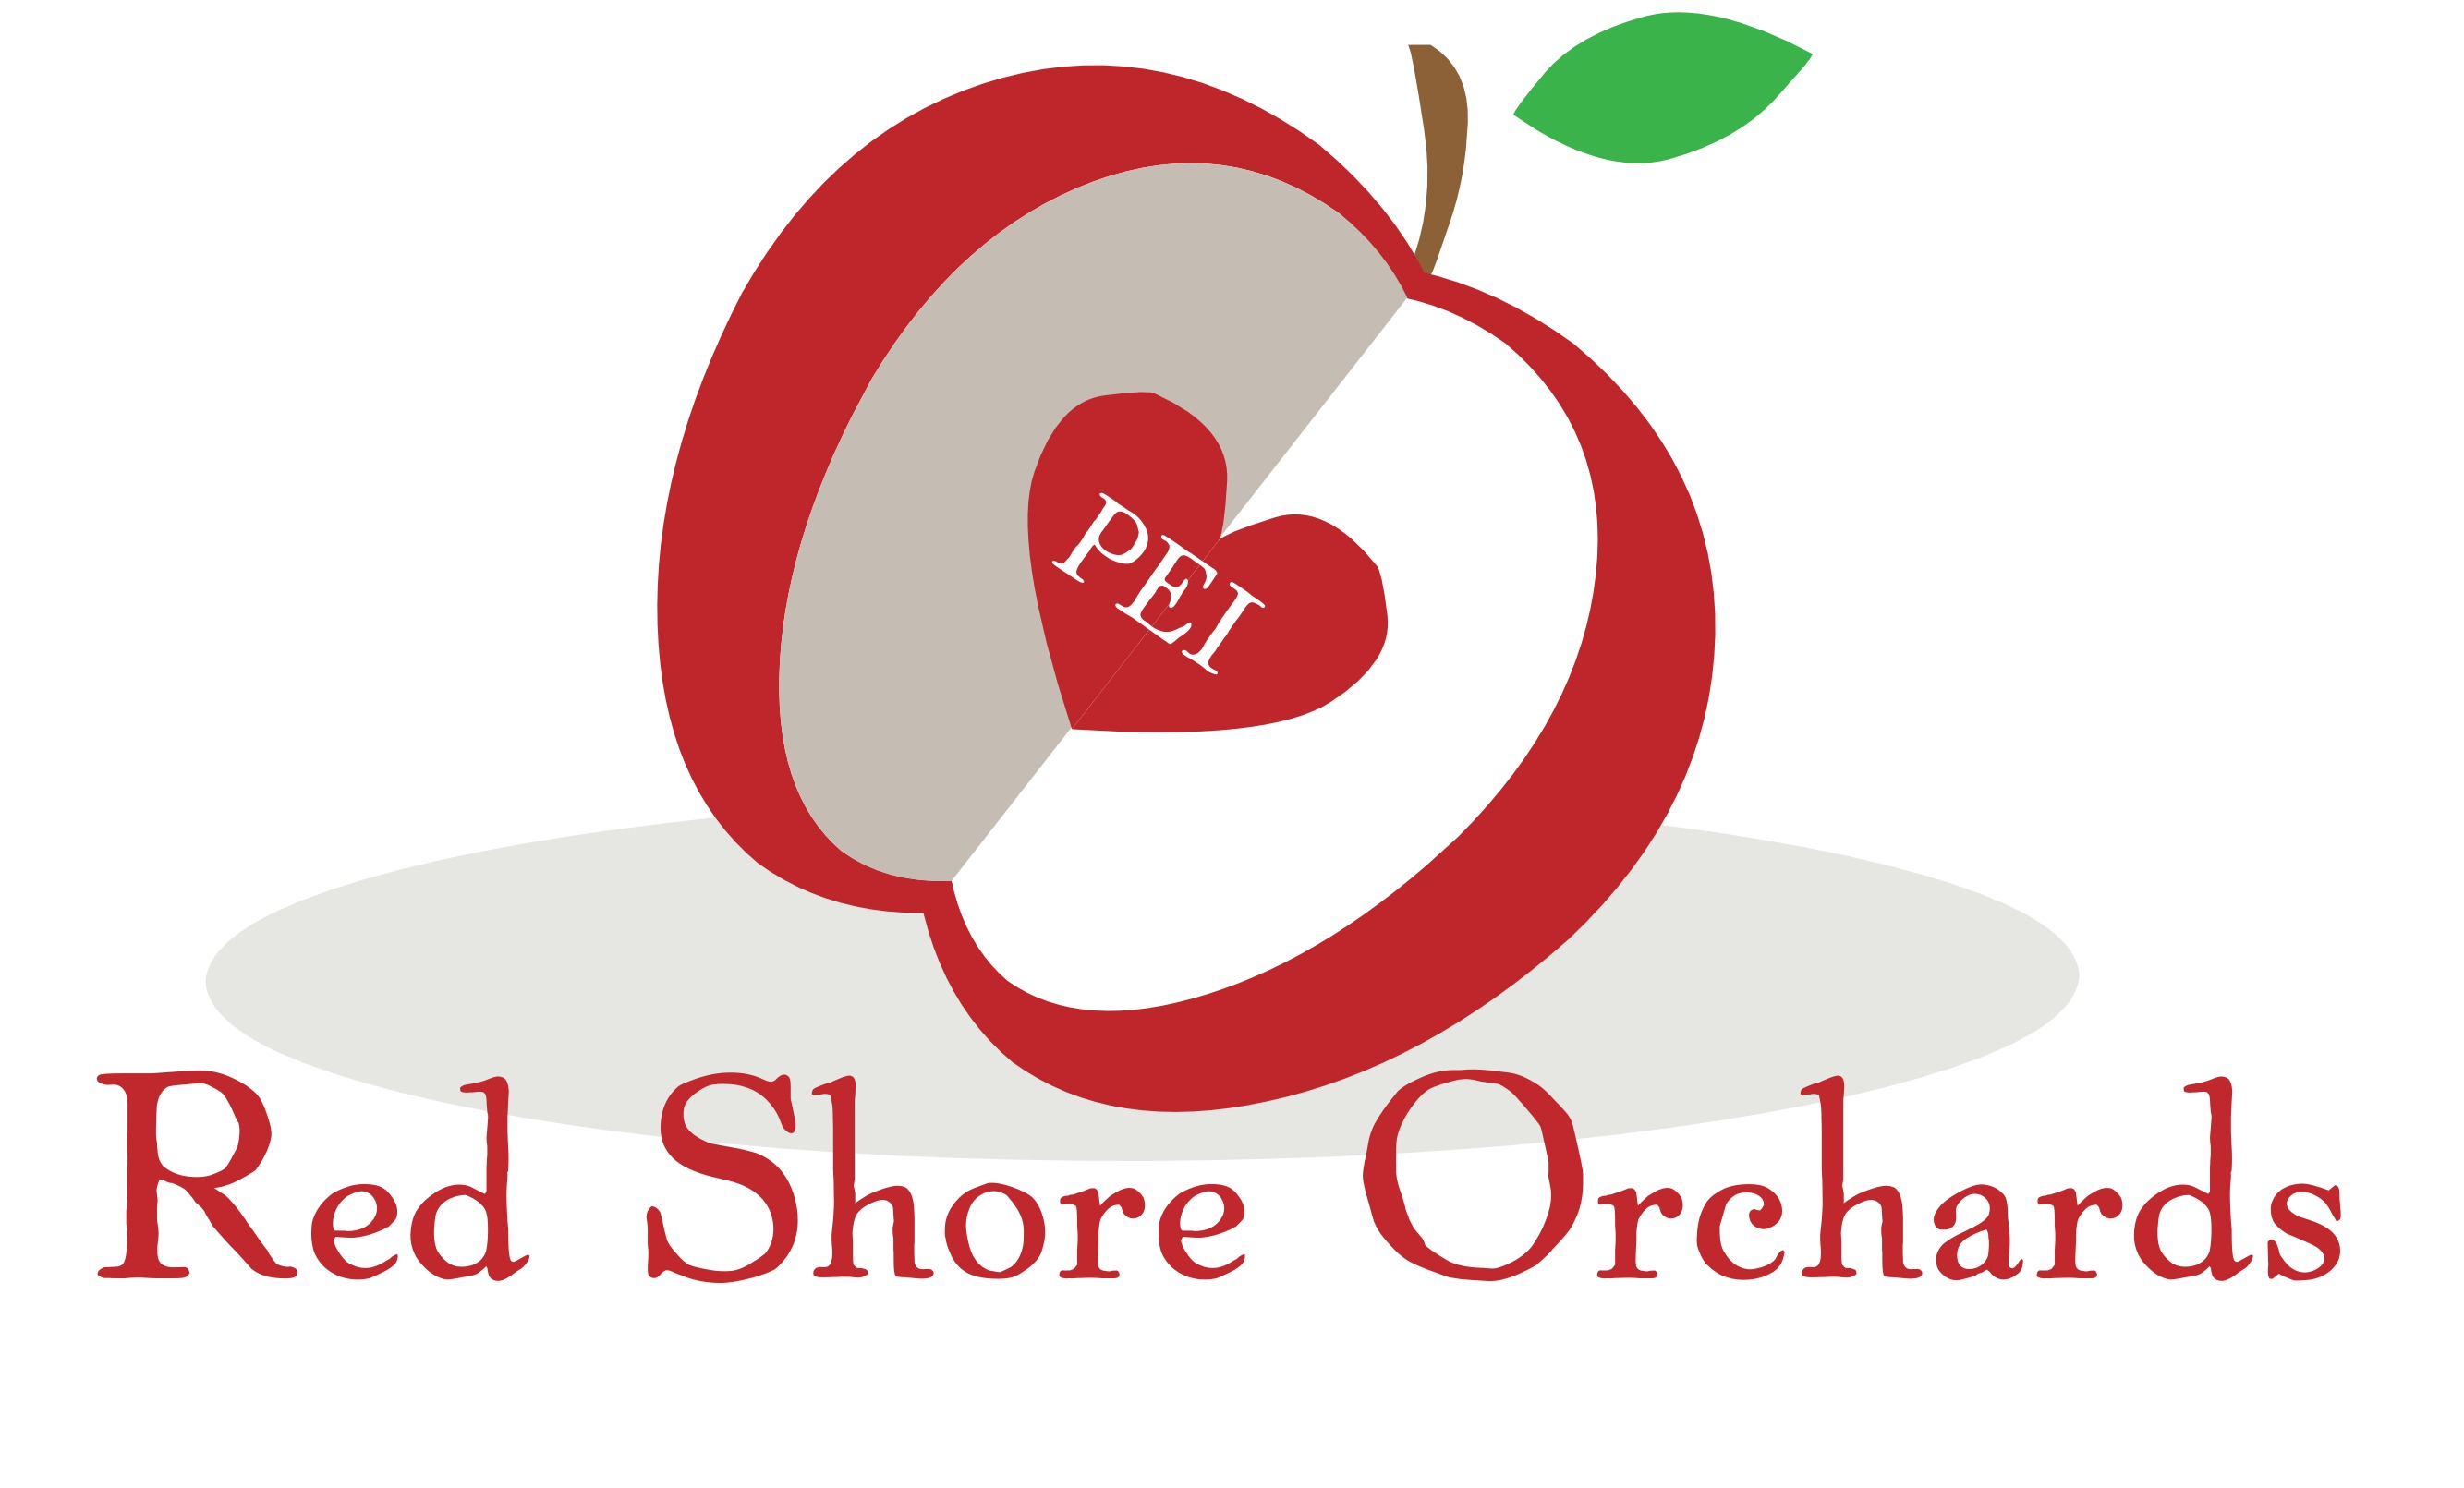 Red Shore Orchards and Management